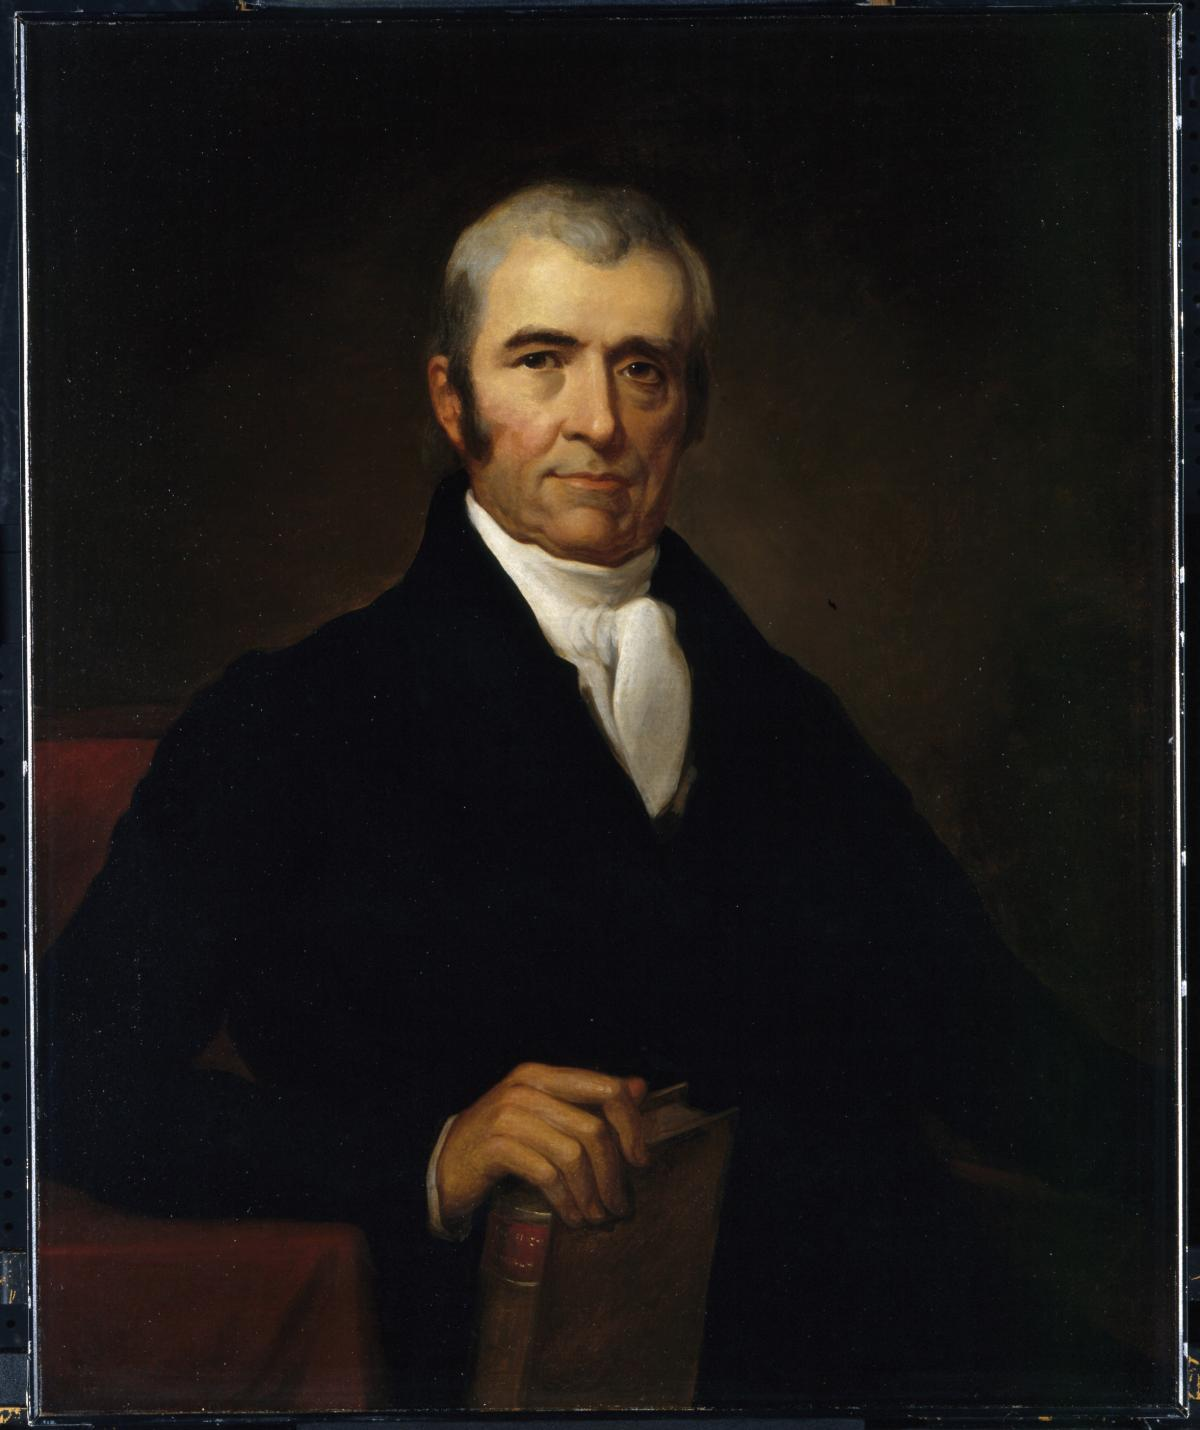 Oil painting portrait of John Marshall